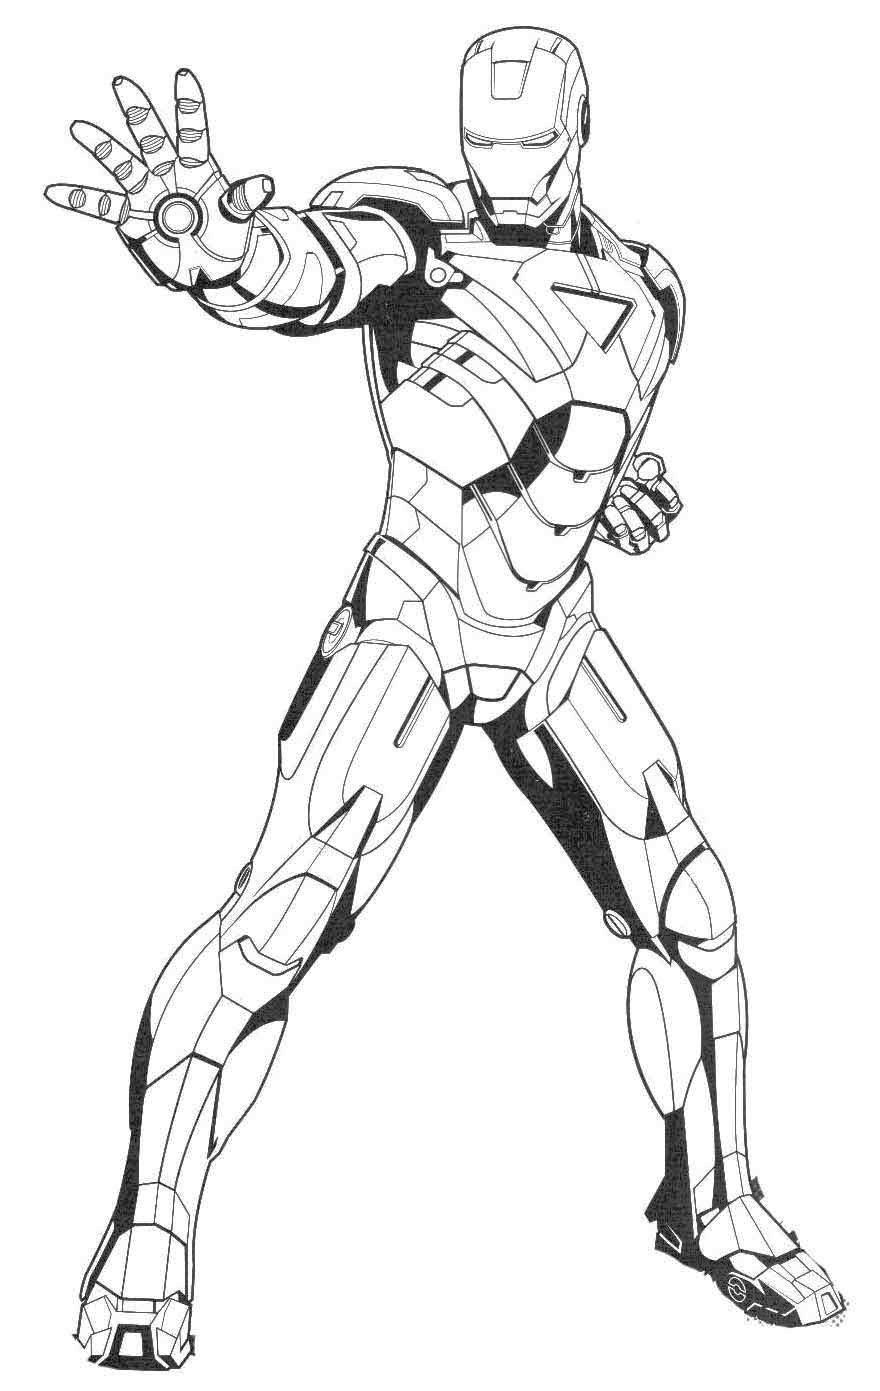 Iron Man Ready Ultimate Weapon Coloring Page Superhero Coloring Pages Superhero Coloring Iron Man Drawing